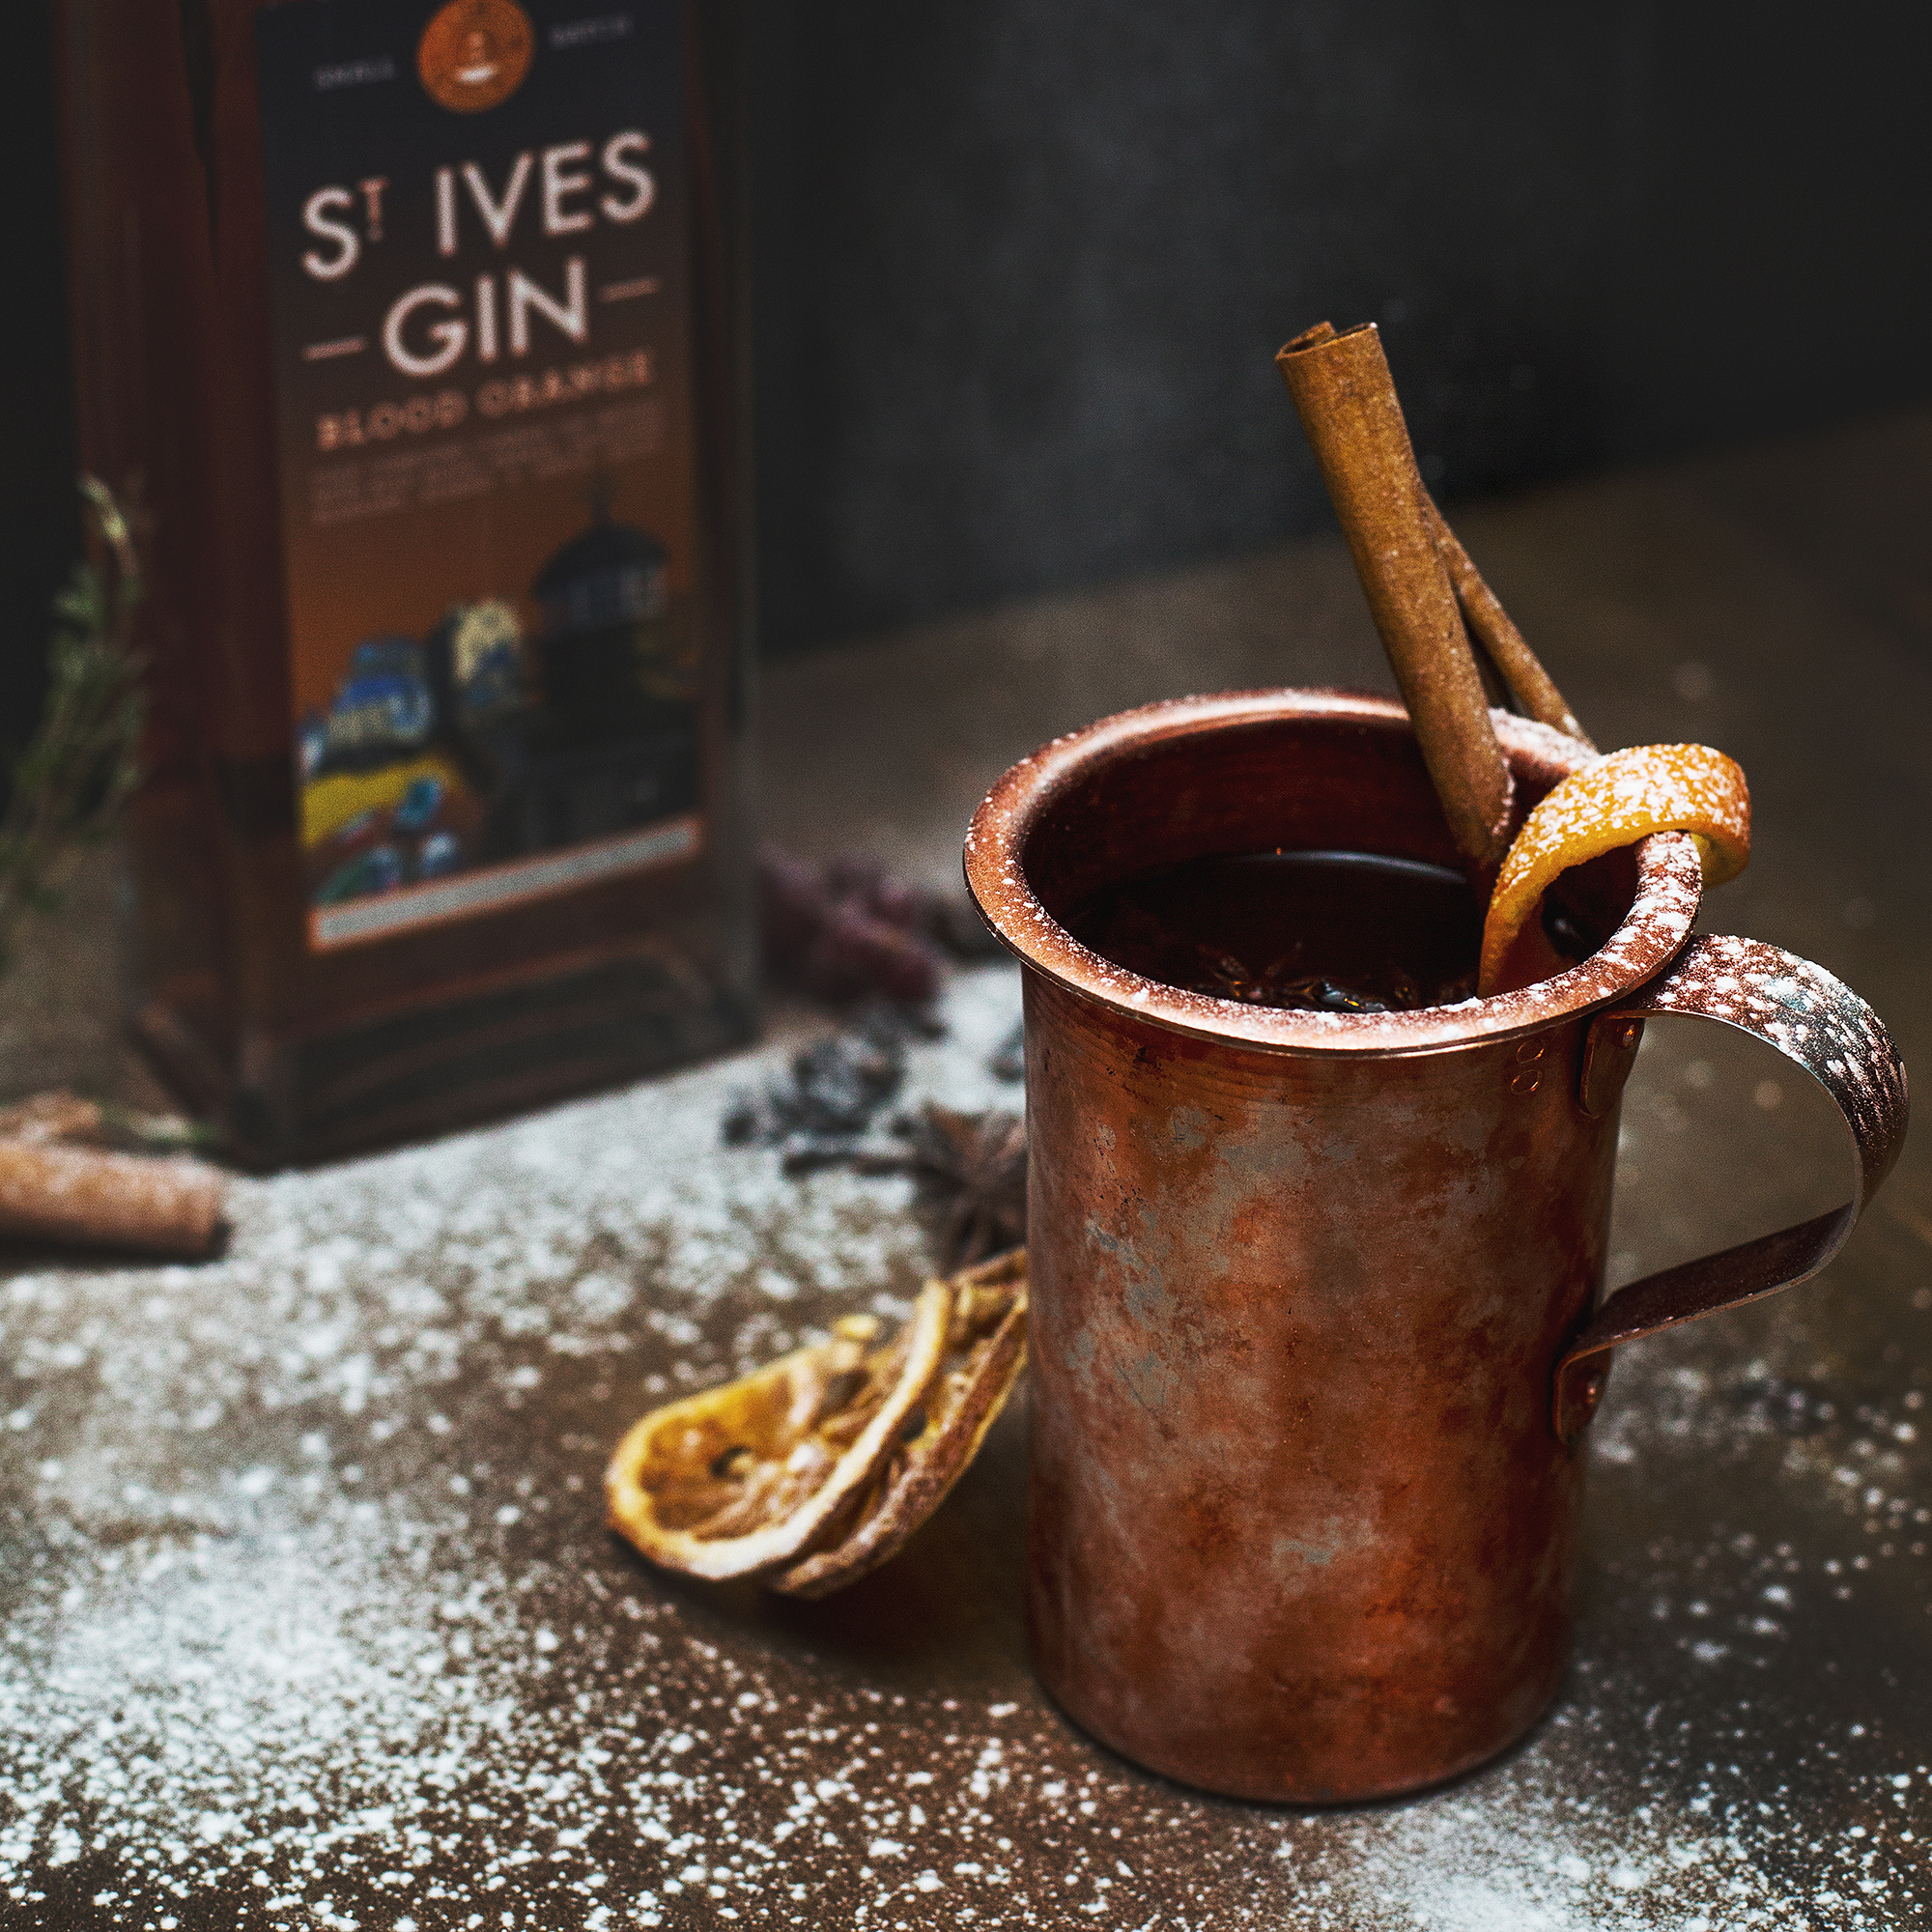 SILCo. Hot Toddy Cocktail with St Ives Blood Orange Gin